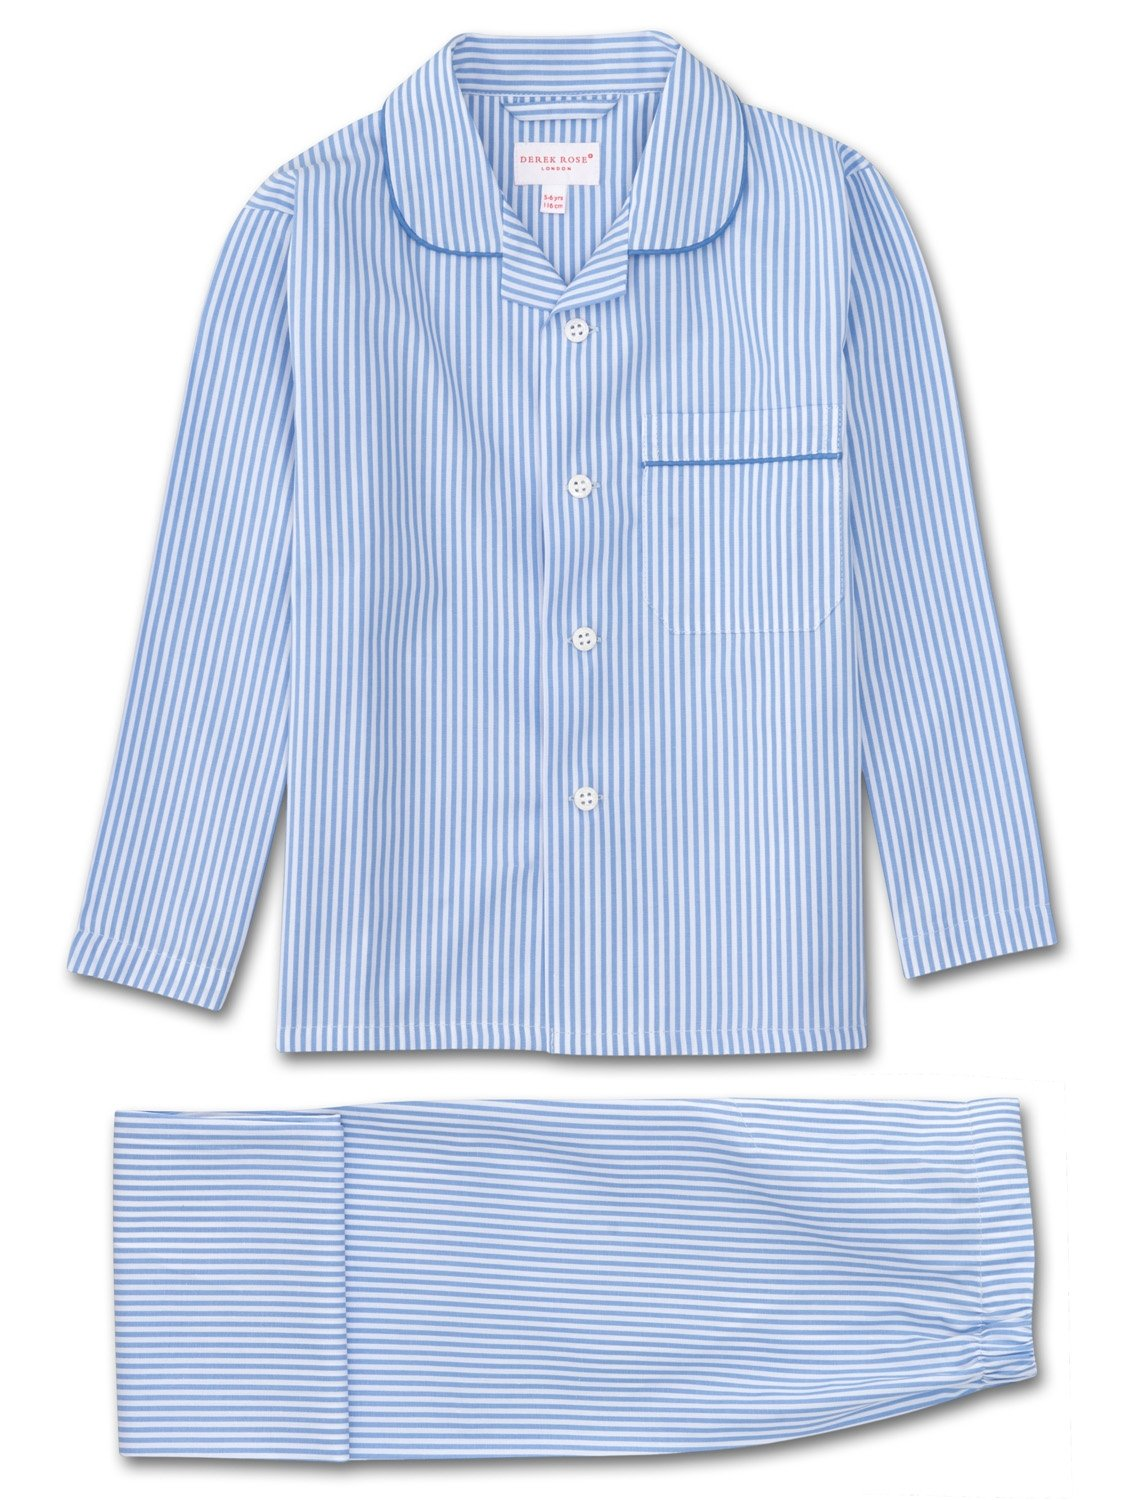 Boys' Pyjamas James Cotton Stripe Blue